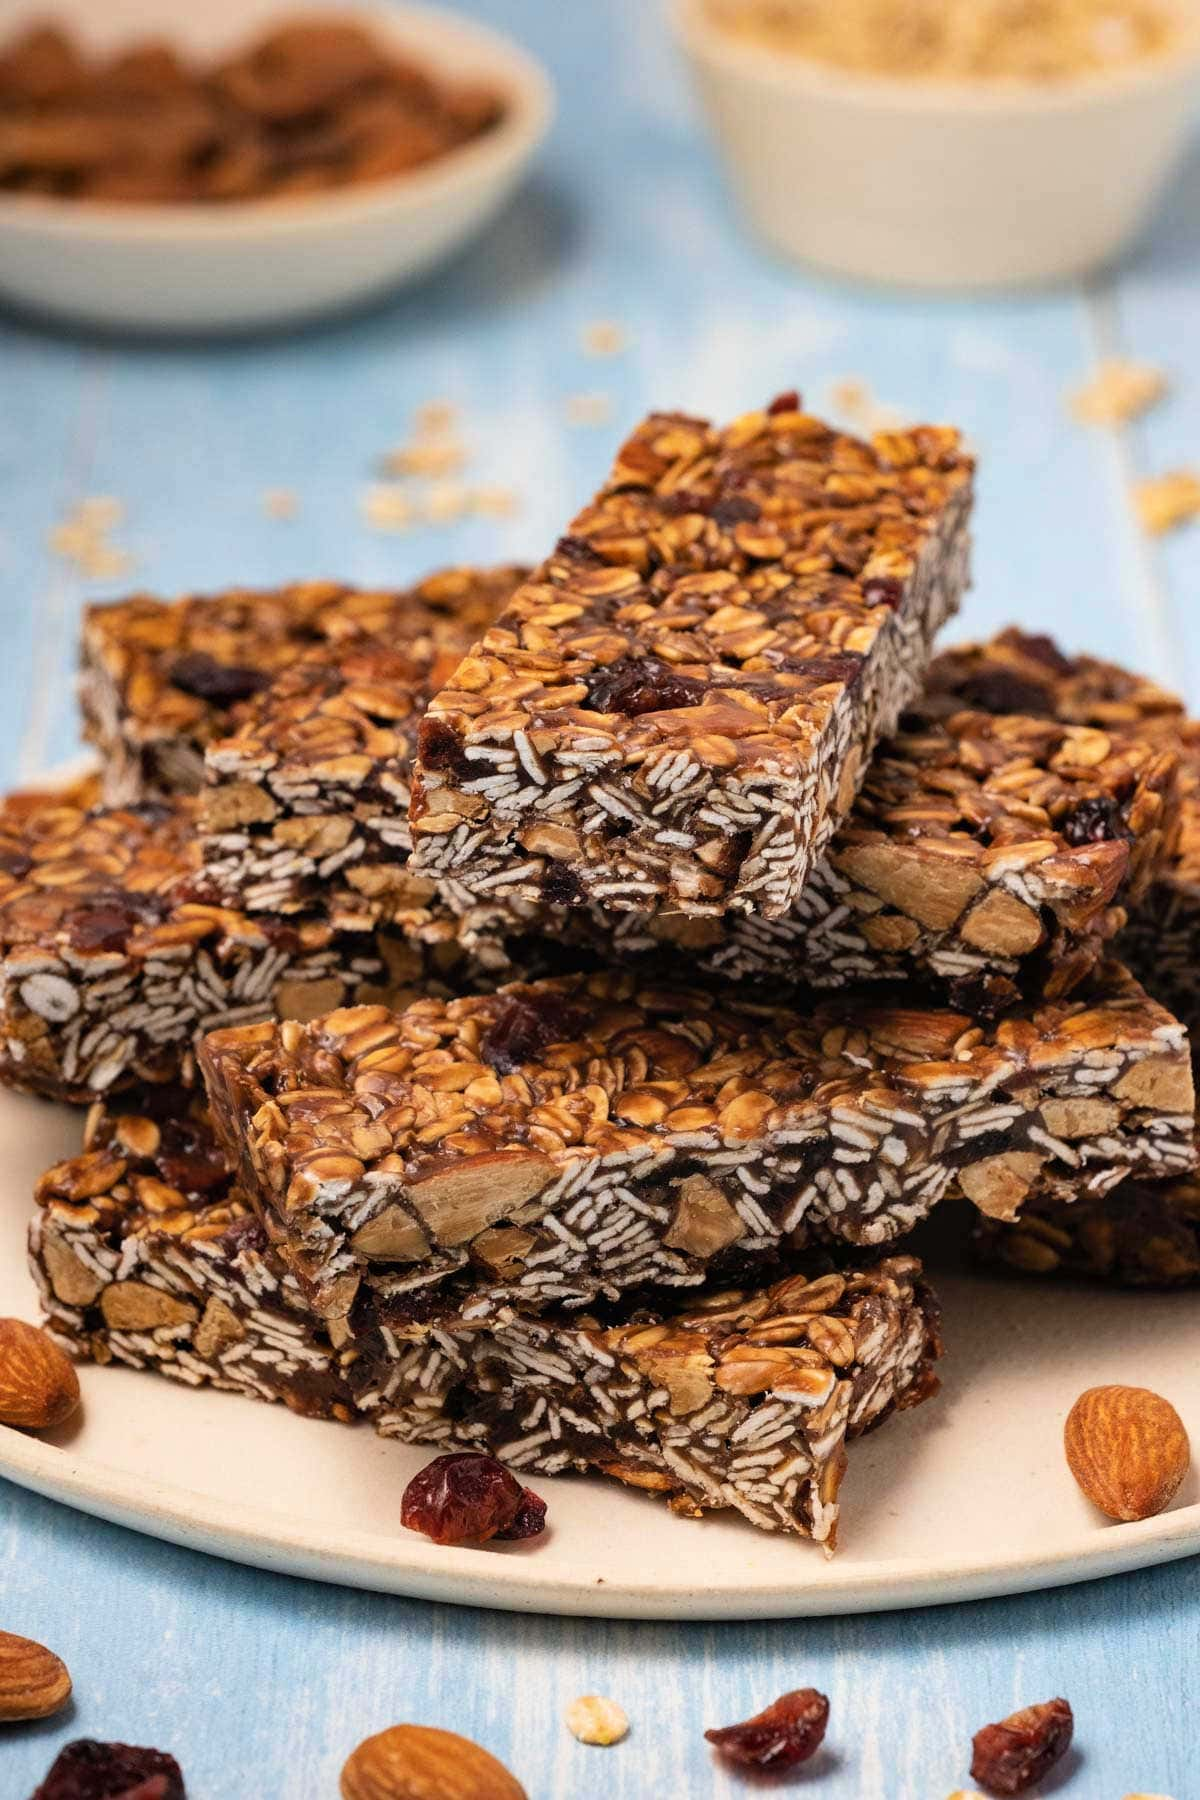 Granola bars stacked up on a plate.